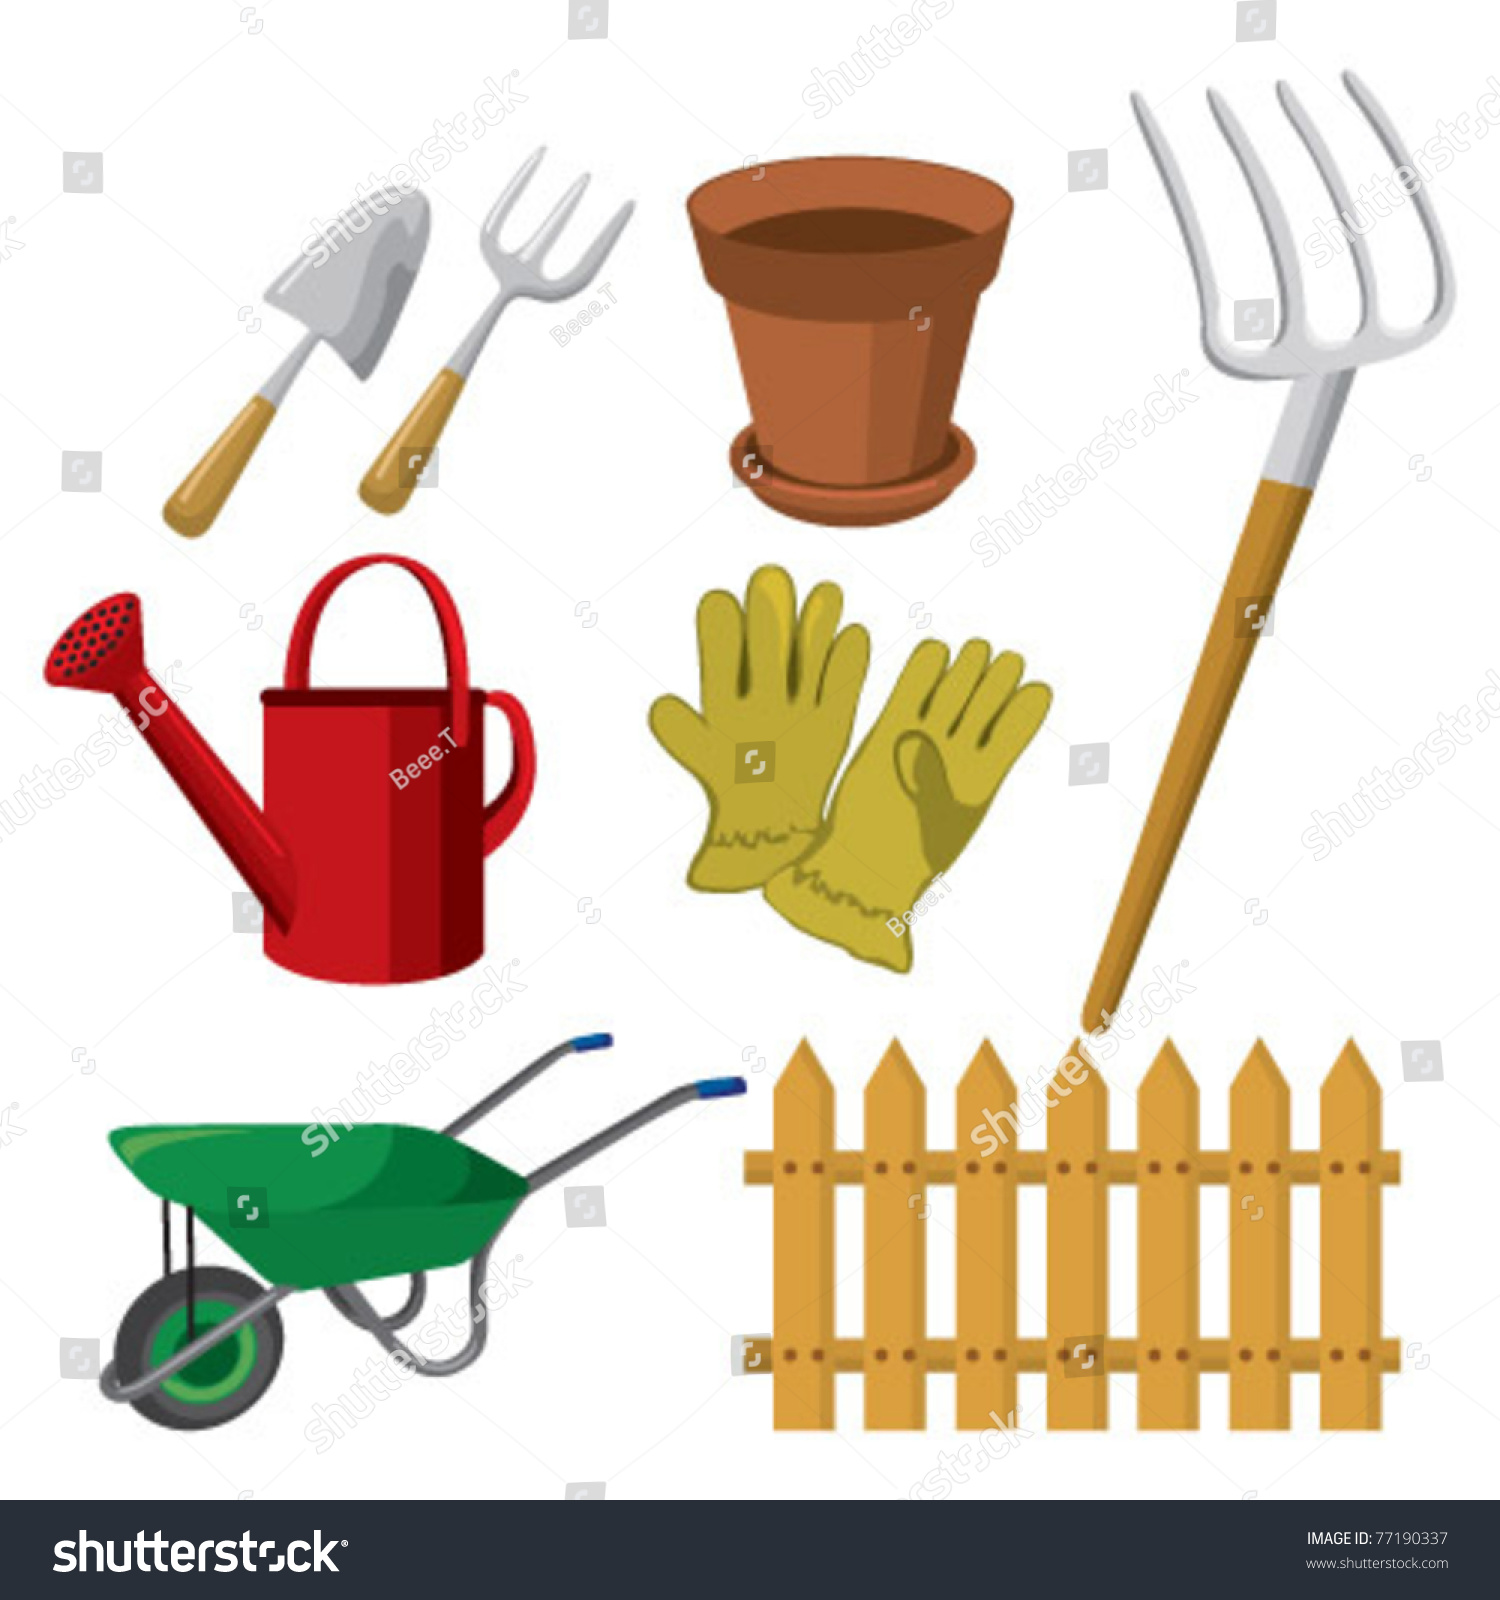 Gardening tools stock vector illustration 77190337 for Gardening tools toronto